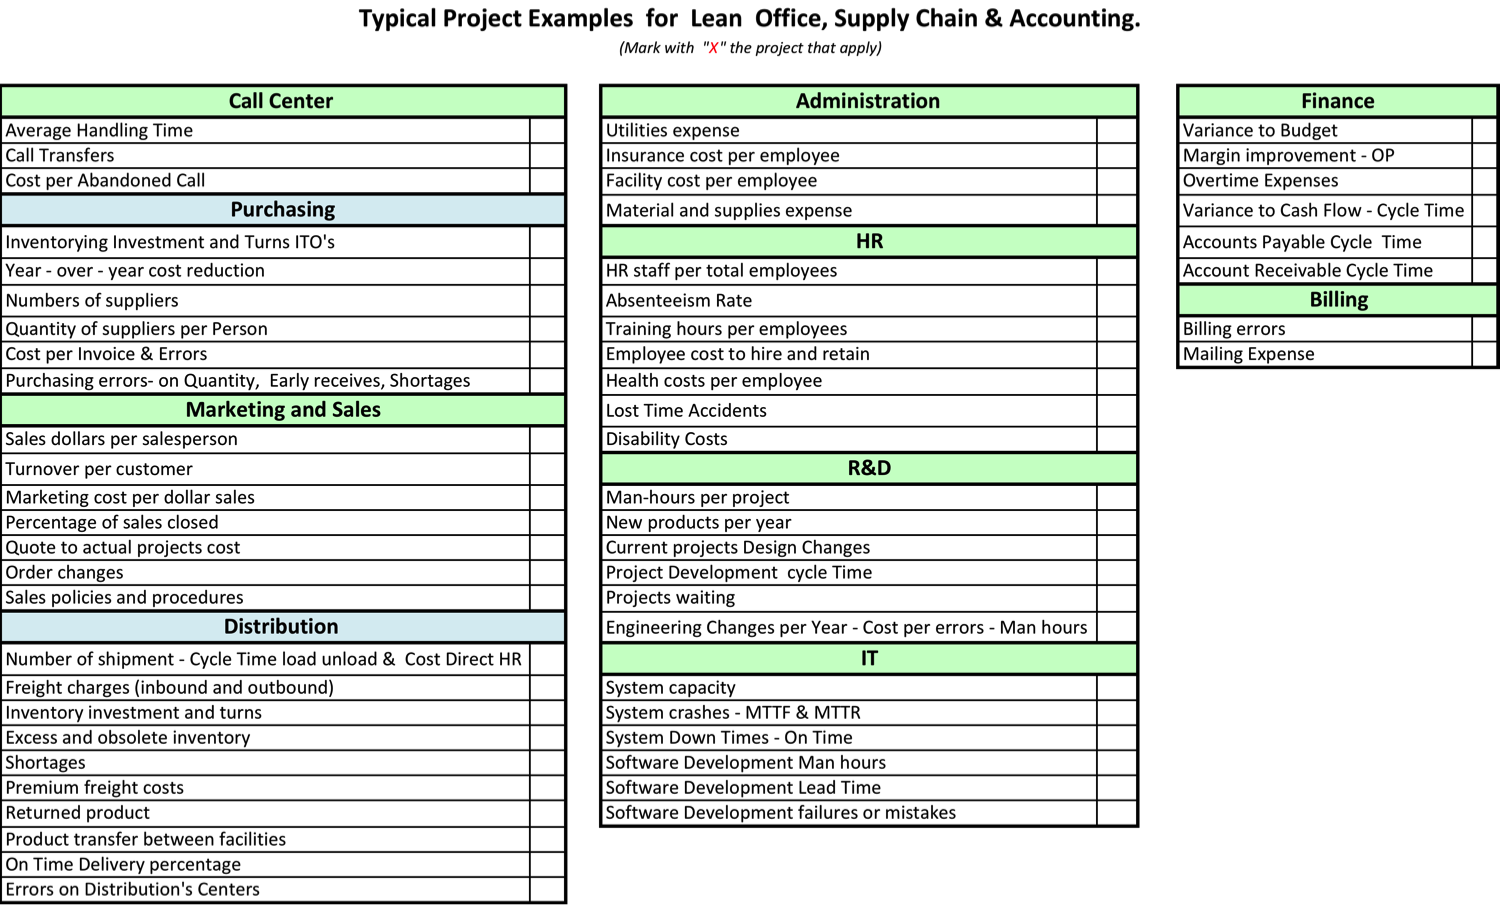 Typical Project Examples For Lean Office Supply Chain